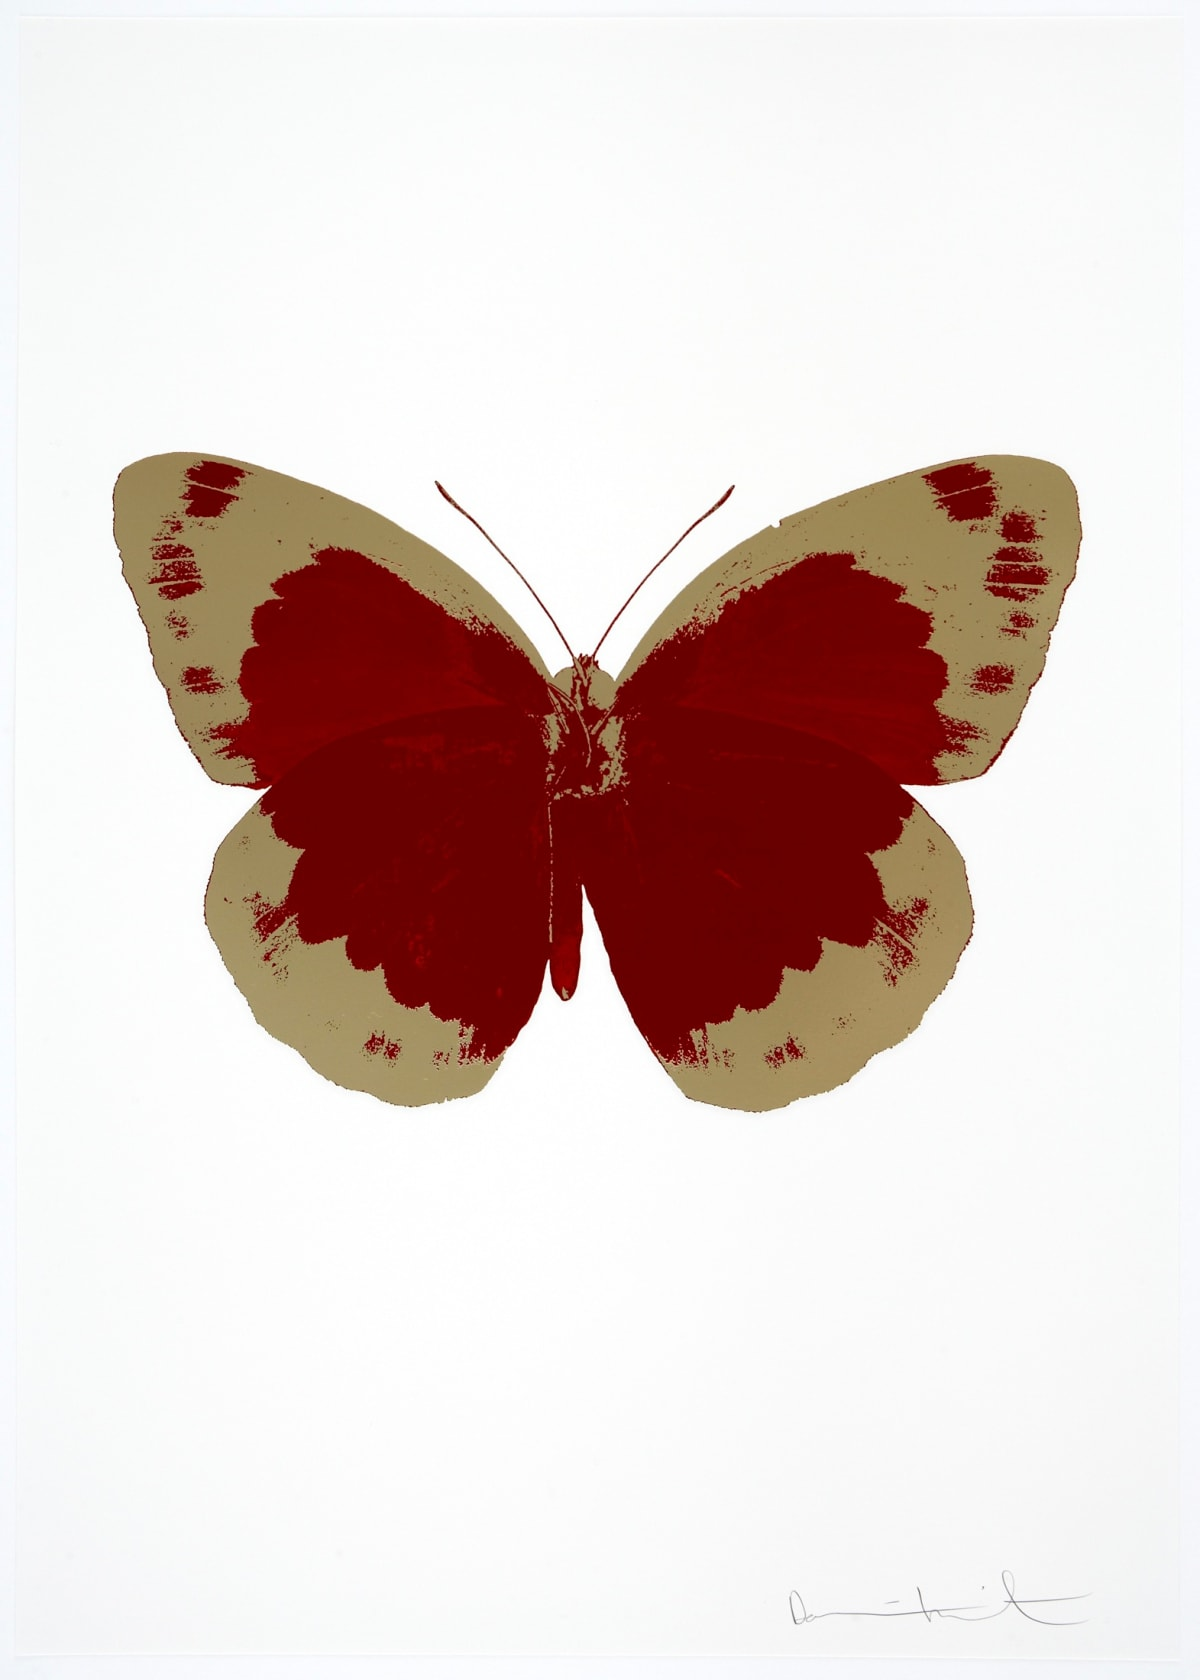 Damien Hirst The Souls II - Chilli Red/Cool Gold/Blind Impression, 2010 2 colour foil block on 300gsm Arches 88 archival paper. Signed and numbered. Published by Paul Stolper and Other Criteria 72 x 51cm OC7829 / 658-12 Edition of 15